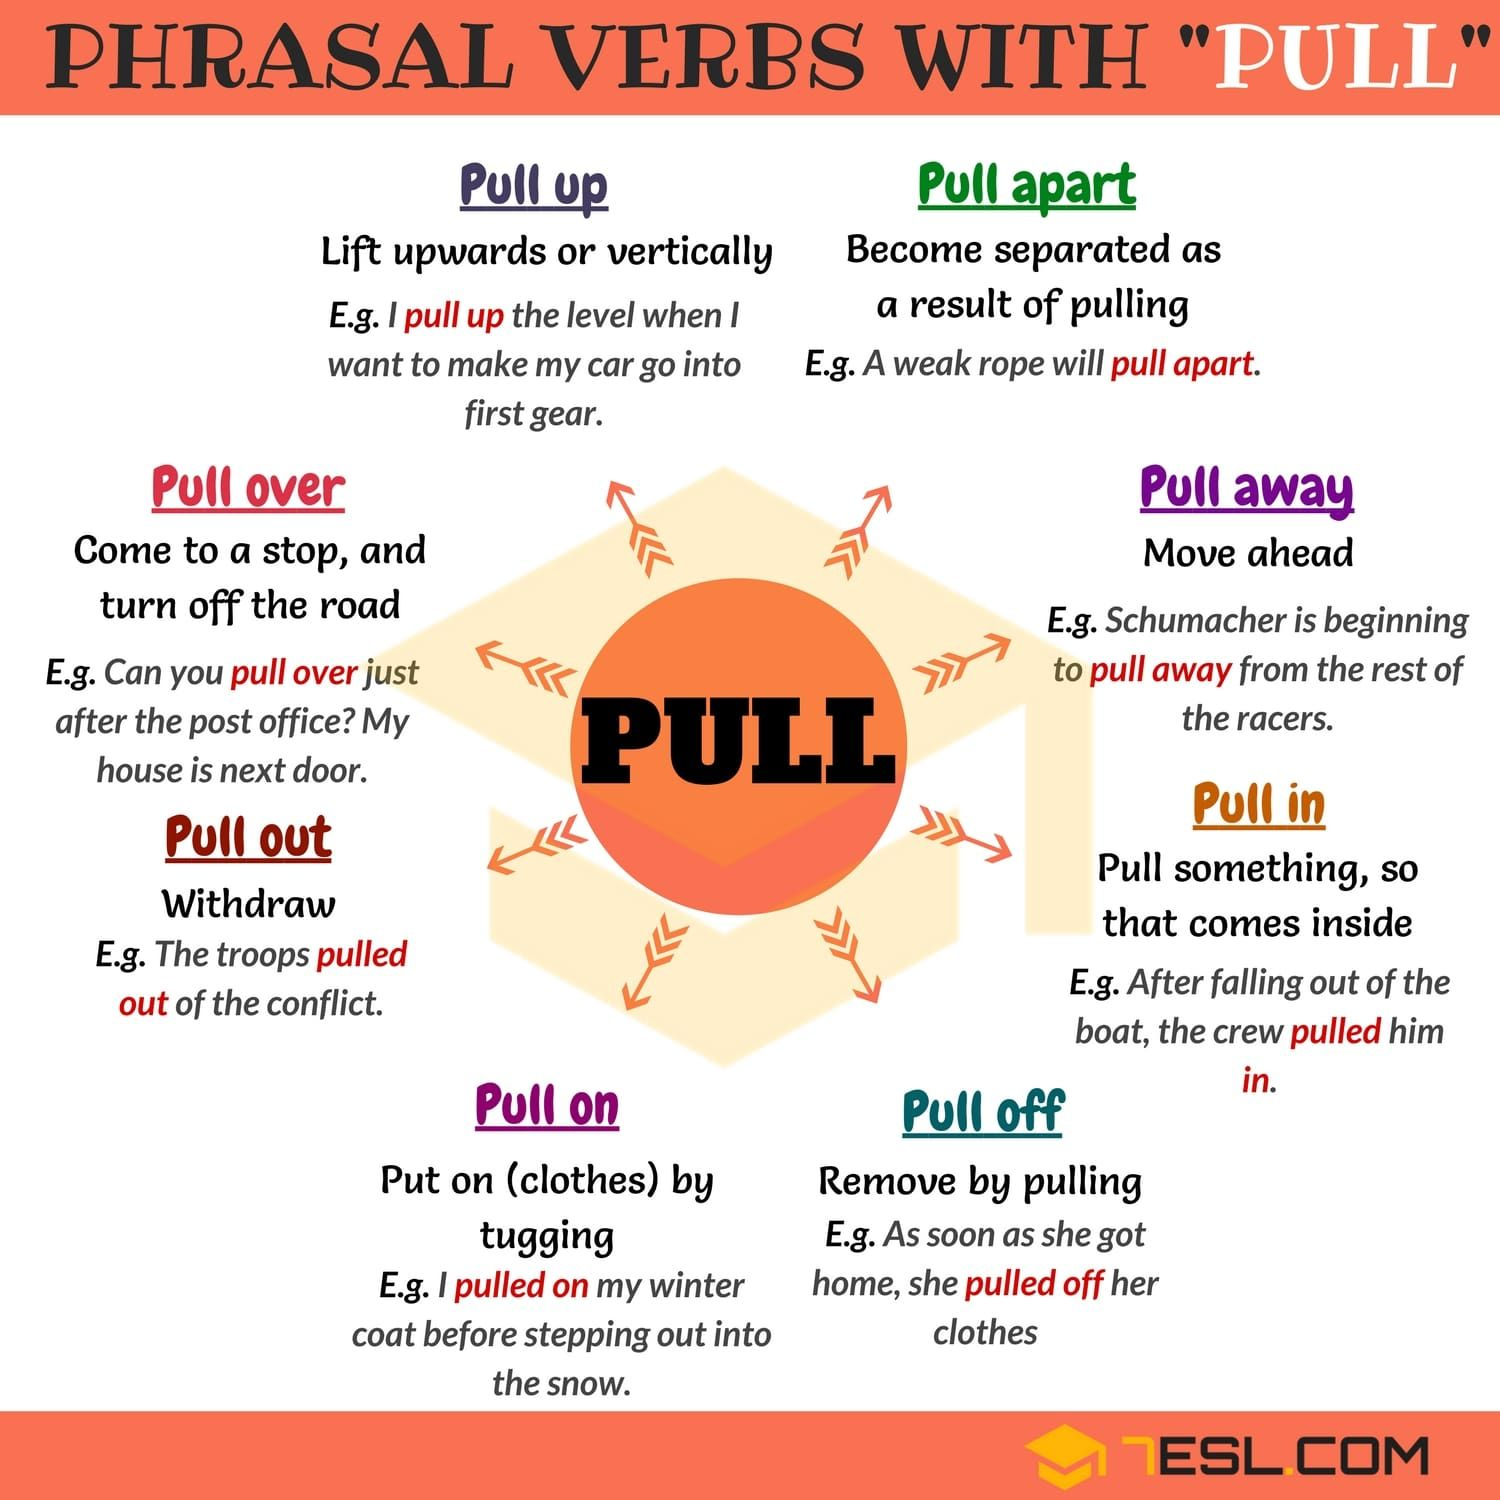 22 Phrasal Verbs With PULL: Pull Out, Pull Off, Pull Up, Pull Over... - 7 E  S L | Learn english vocabulary, English idioms, Conversational english